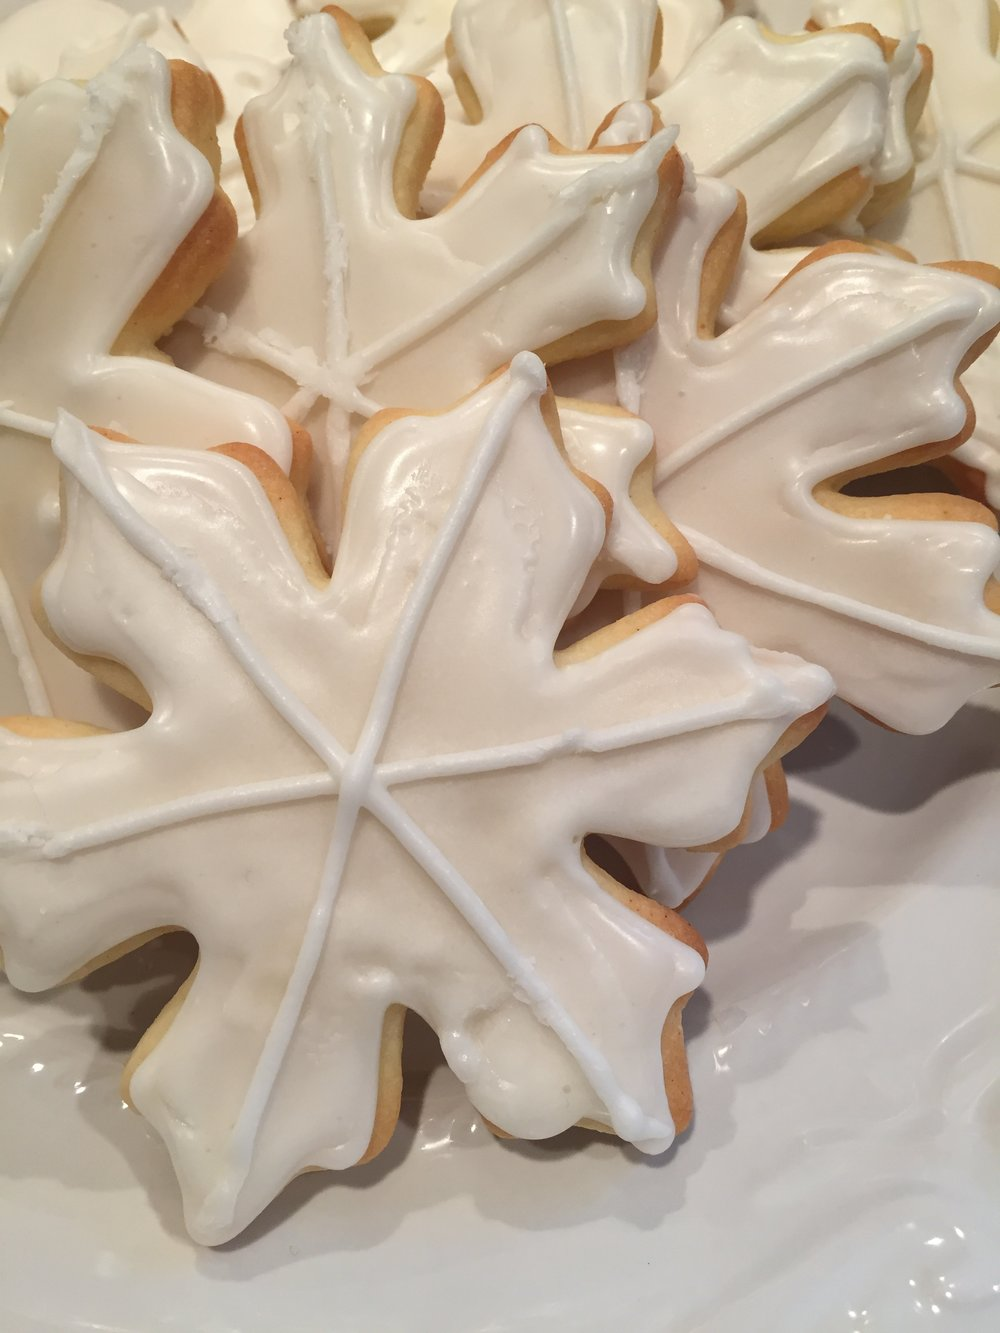 Snowflake sugar cookies... note the piping on the top is not smooth. This is what happens if you are too anxious to put them on a plate and the icing is not completely dry. This year I will make sure to let them sit longer.